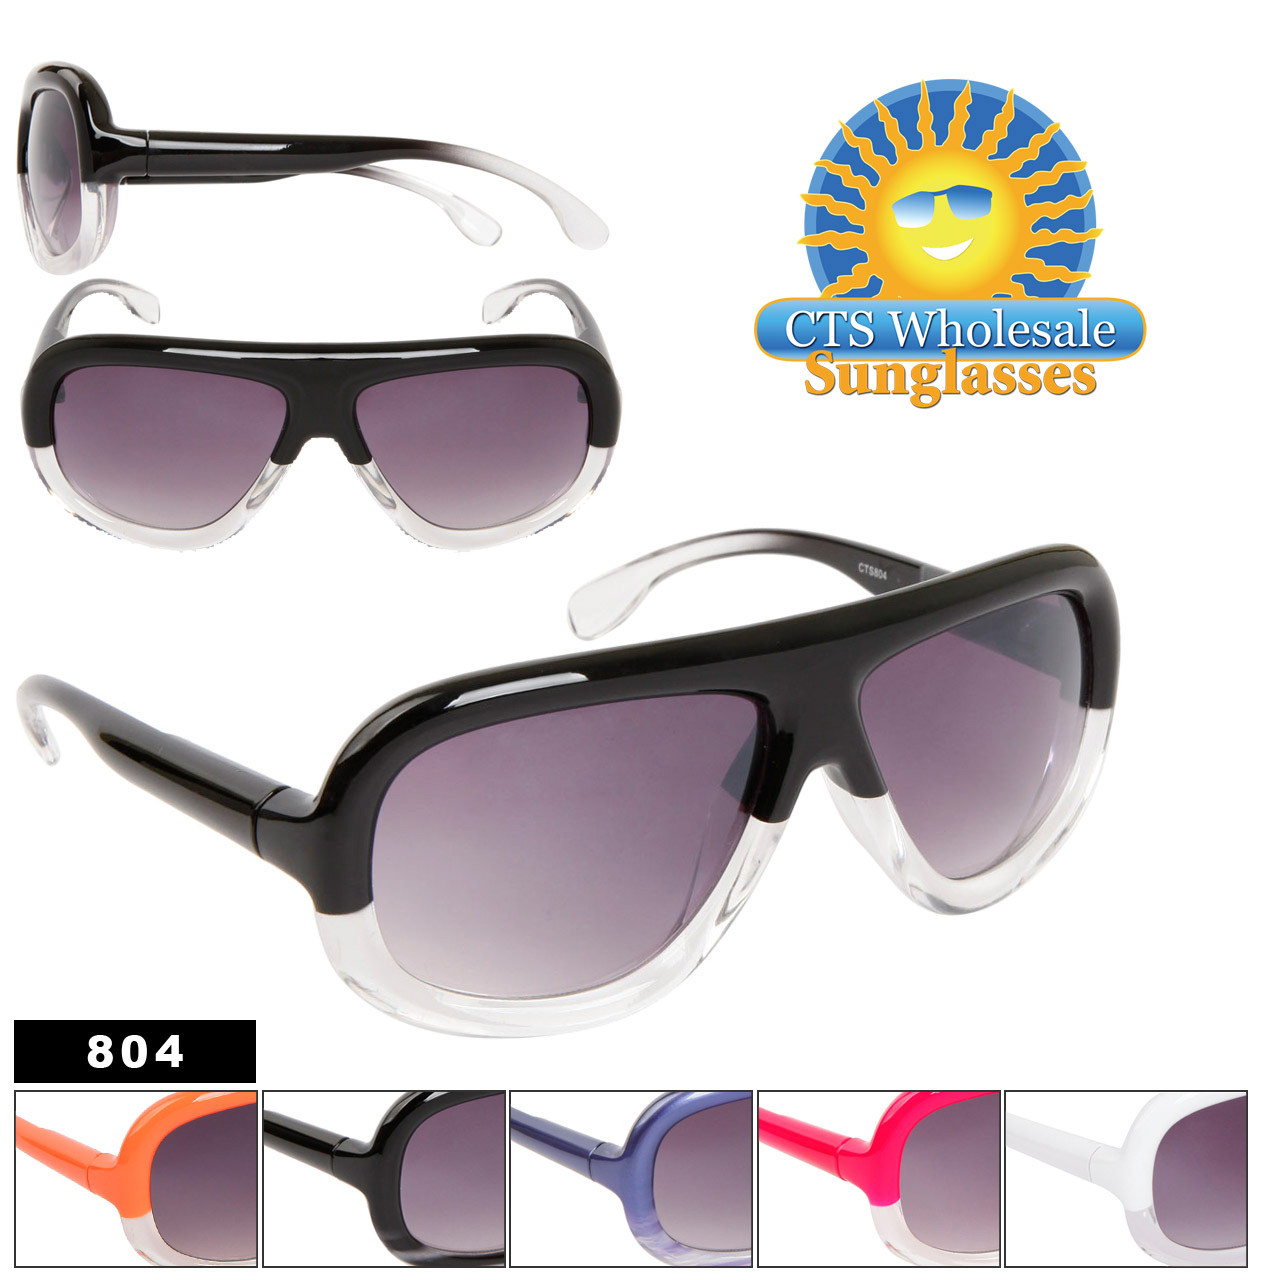 Wholesale Sunglasses 804